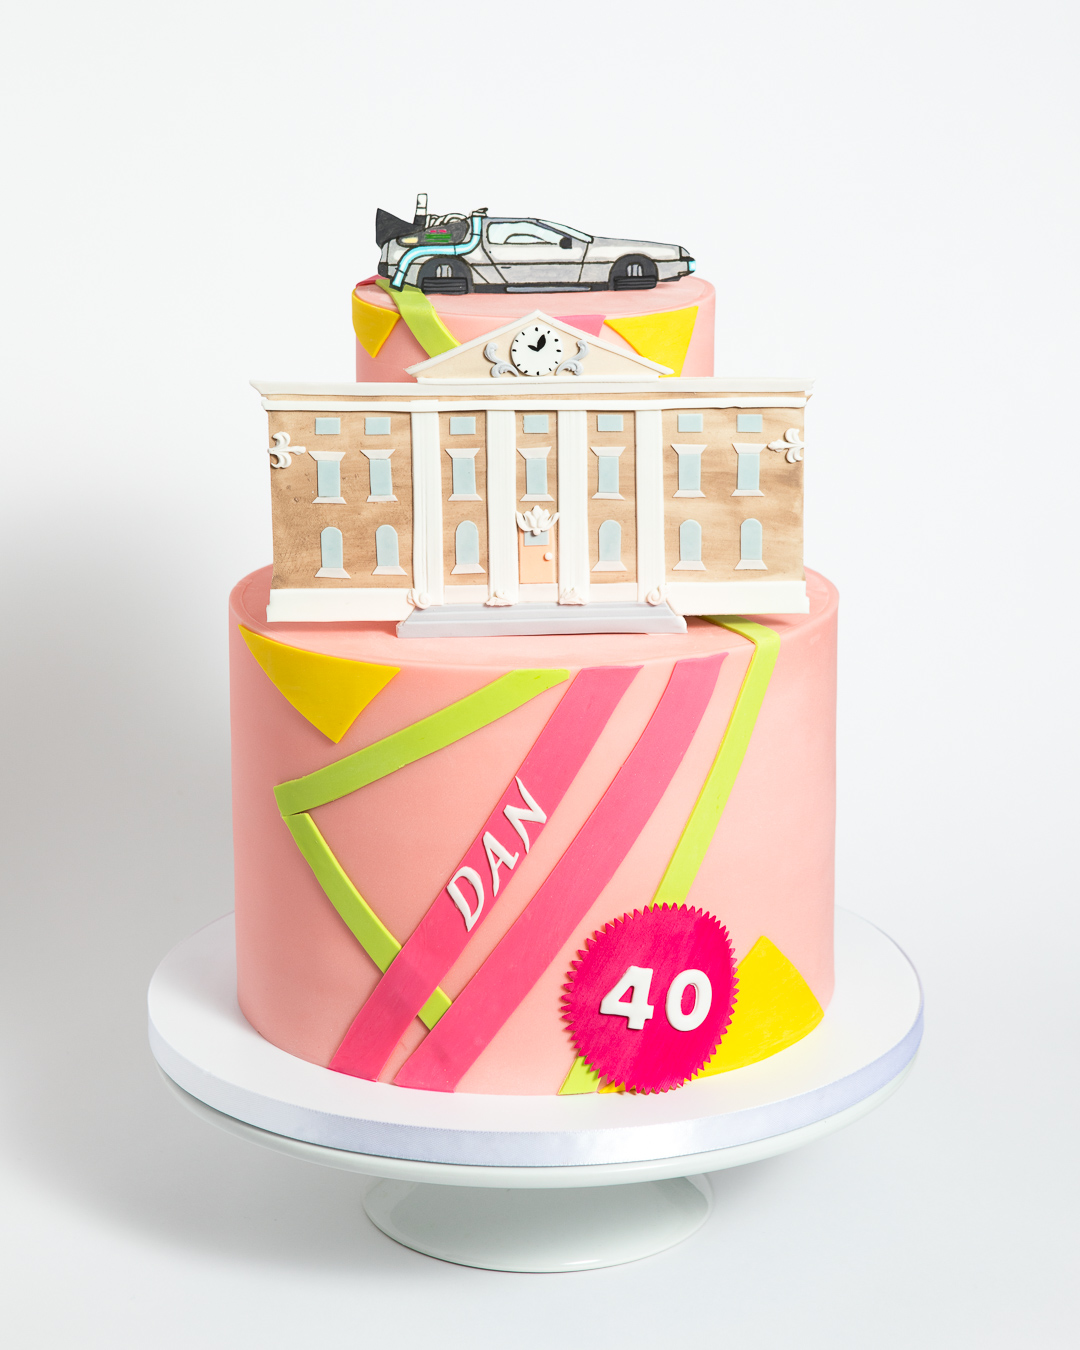 Back to the Future 40th Birthday Cake with DeLorean and Hoverboard Pattern